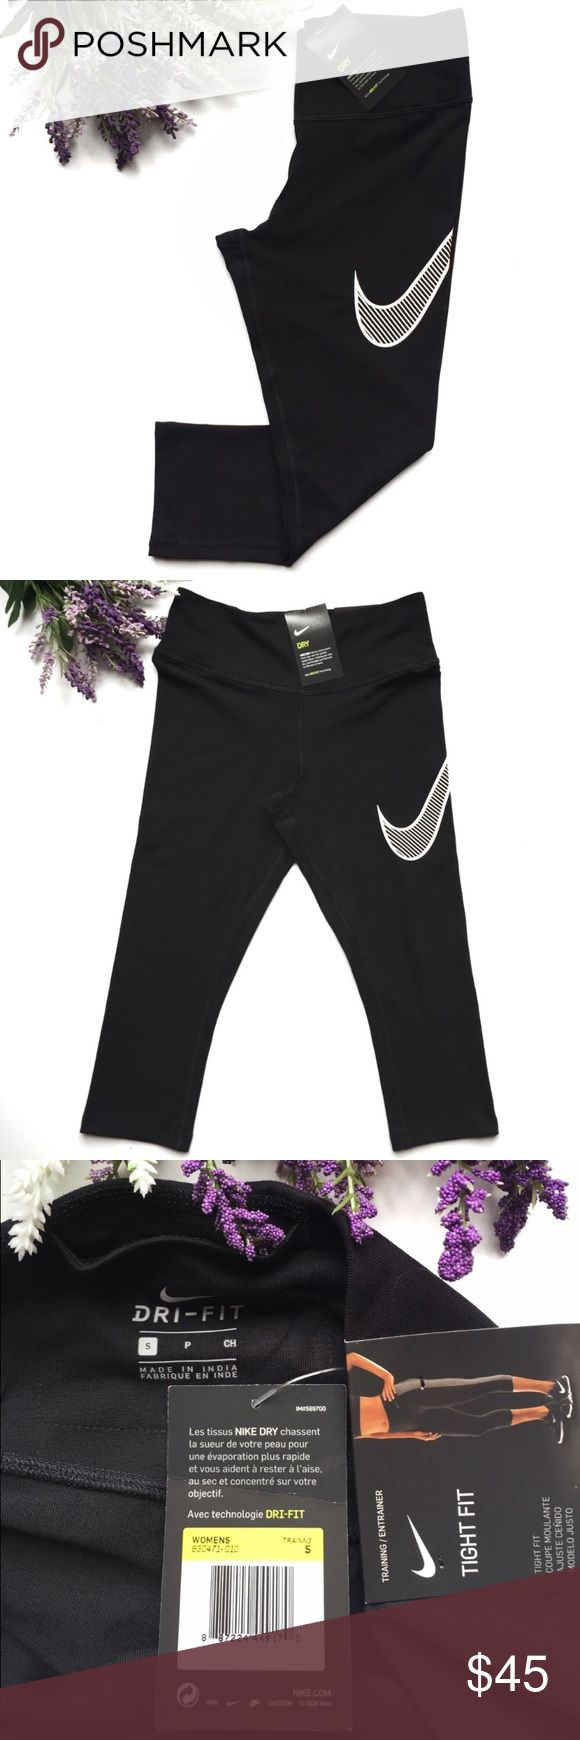 """Nike Legend Dri-Fit Training Leggings ULTRA SOFT & MADE TO MOVE. Hugging your legs from hip to knee, Nike Legendary Tight Women's Training Capris offer a flattering fit w/ ultra-soft, sweat-wicking fabric for maximum comfort and excellent coverage for any workout. Ultra-soft Dri-FIT nylon fabric helps keep you dry & comfortable. Form-fitting waistband w/ flat seams stays comfortably in place as you move. Bonded pocket inside waistband keeps your small items secure. 19"""" inseam based on size…"""